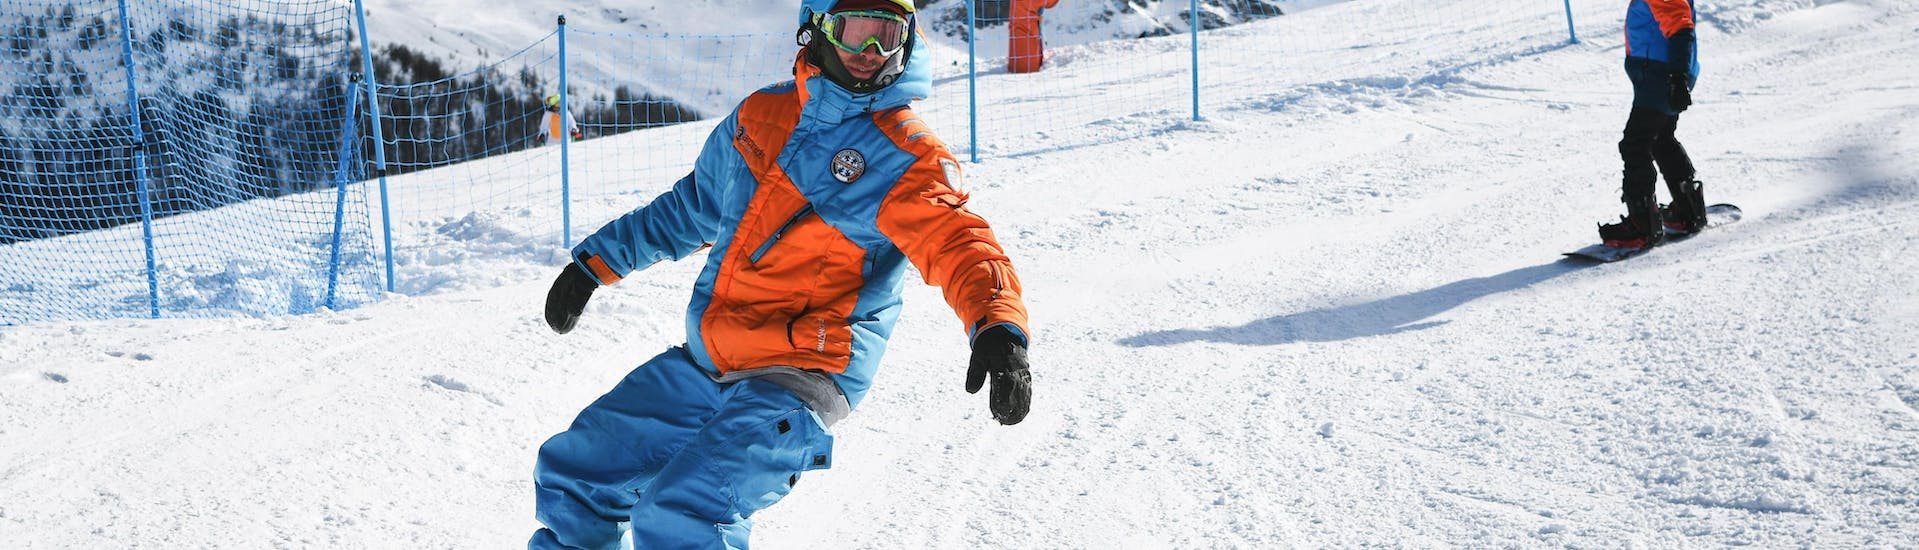 A snowboarder is following his instructor from the ski school YES Academy Sestriere during his Private Snowboarding Lessons for Kids & Adults - Special.